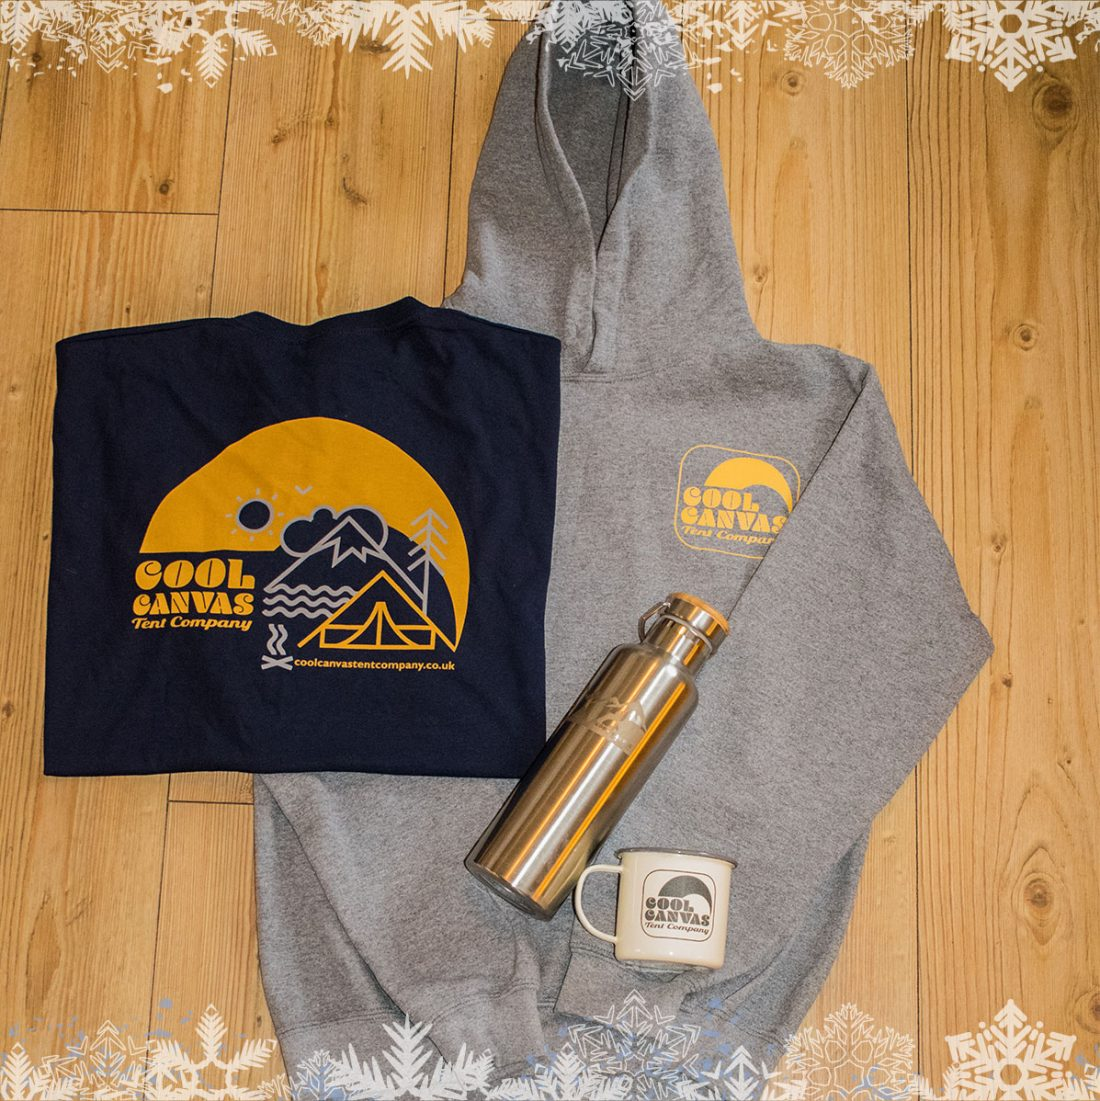 Cool Canvas Christmas Giveaway